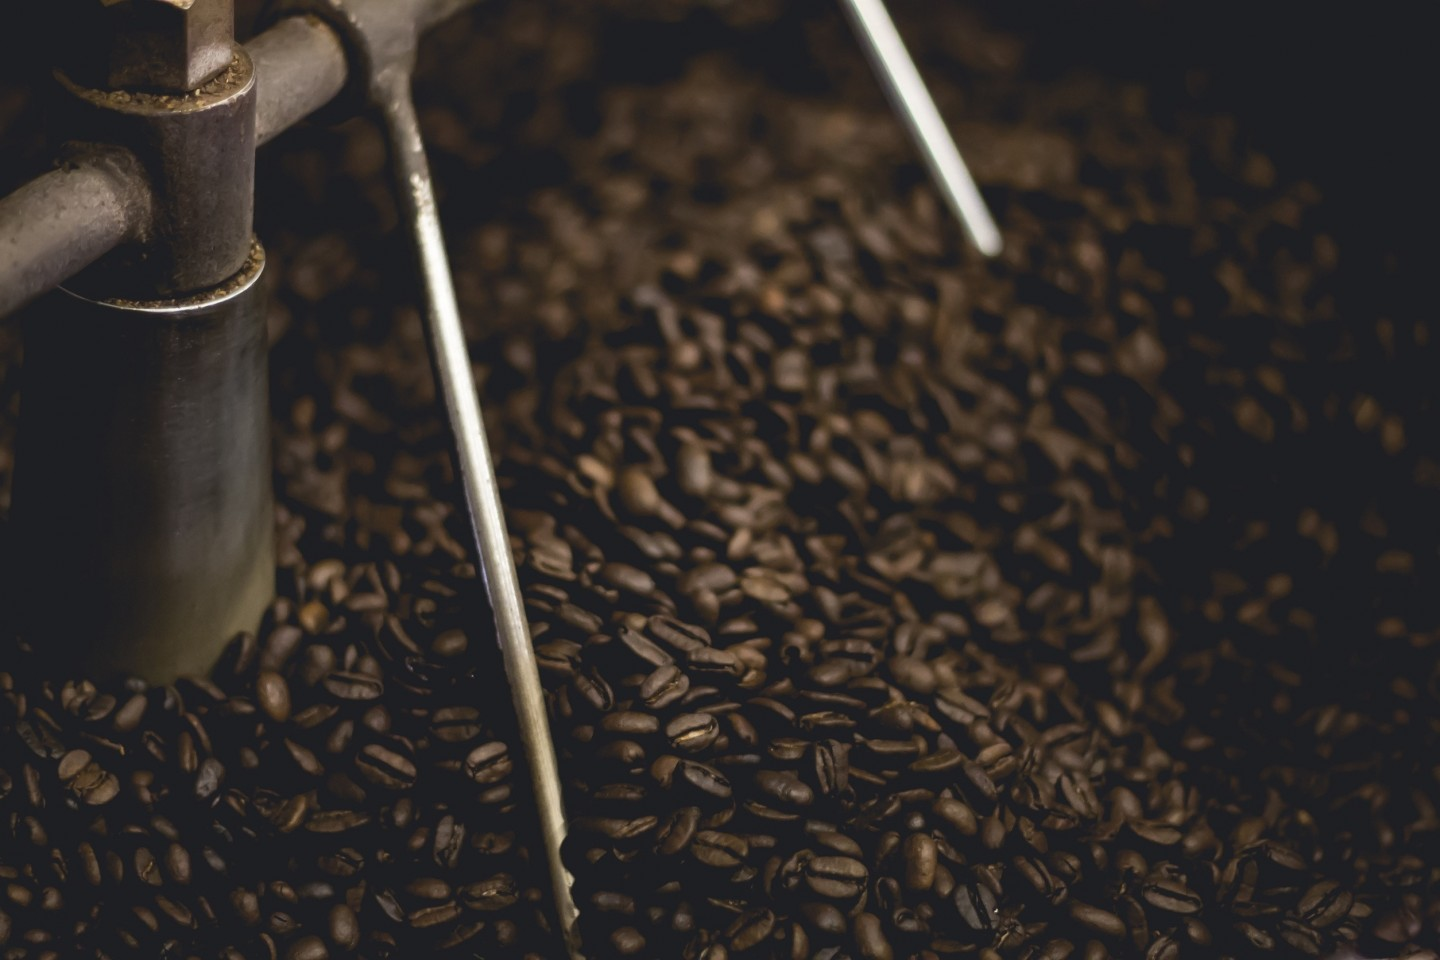 The Definitive Coffee Lowdown: Health Benefits and Concerns